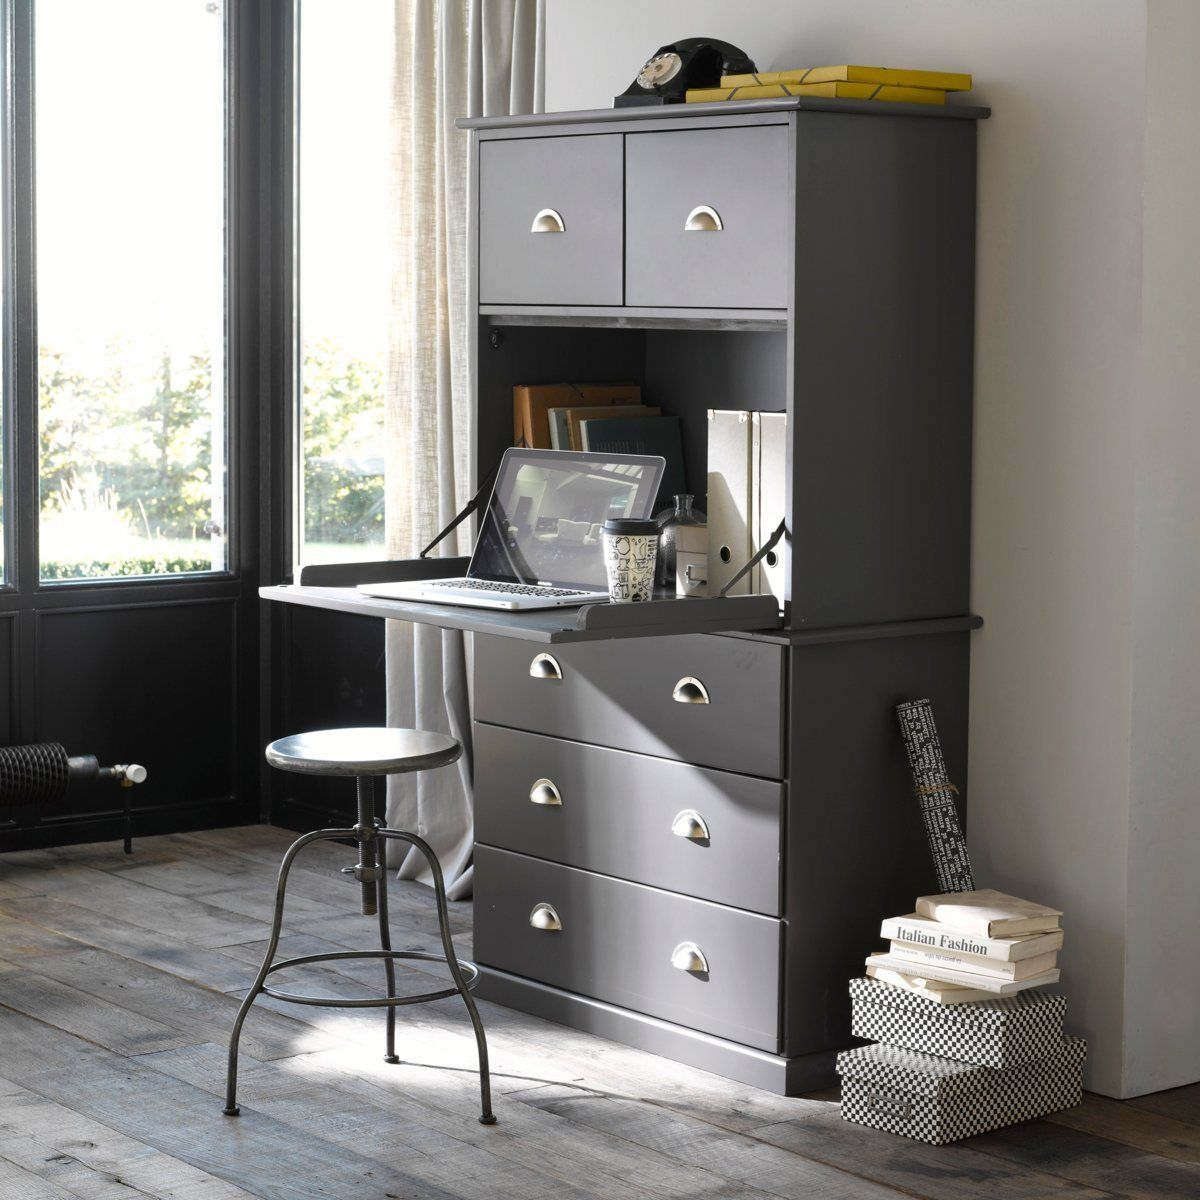 Secr taire biblioth que pin massif betta la redoute for Model de bureau secretaire